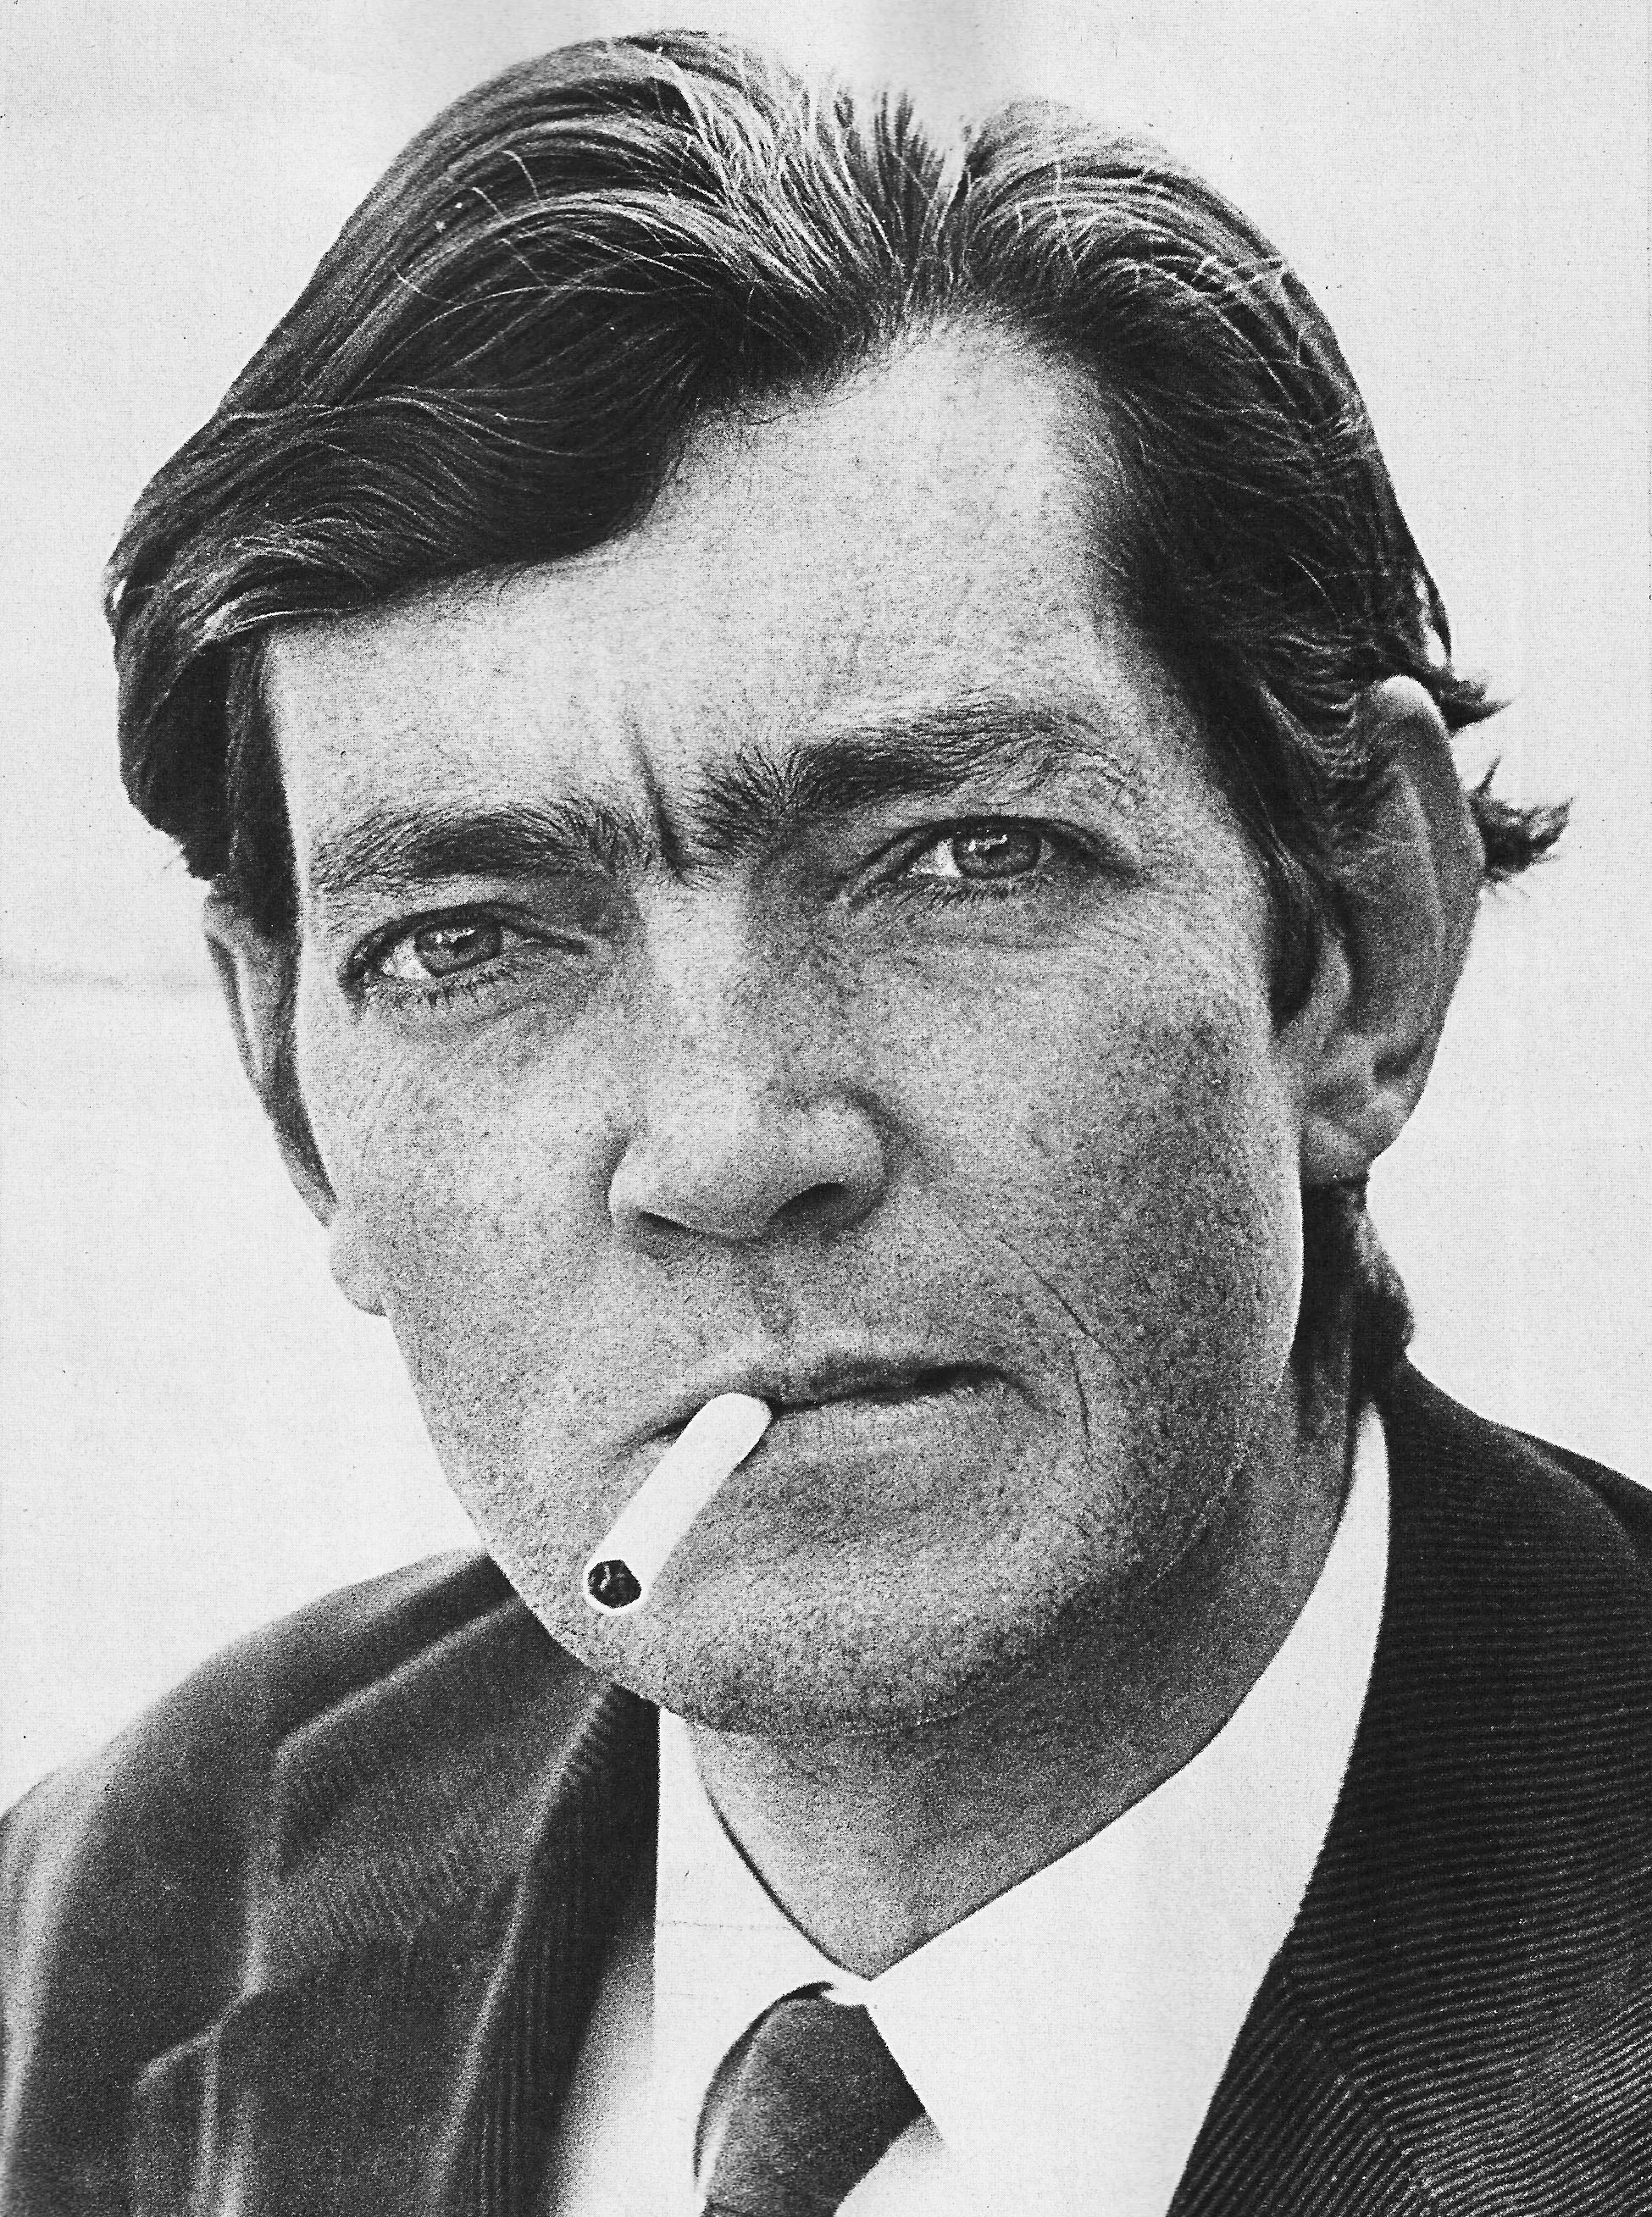 13 Reasons Why Libro Español Julio Cortázar Wikipedia